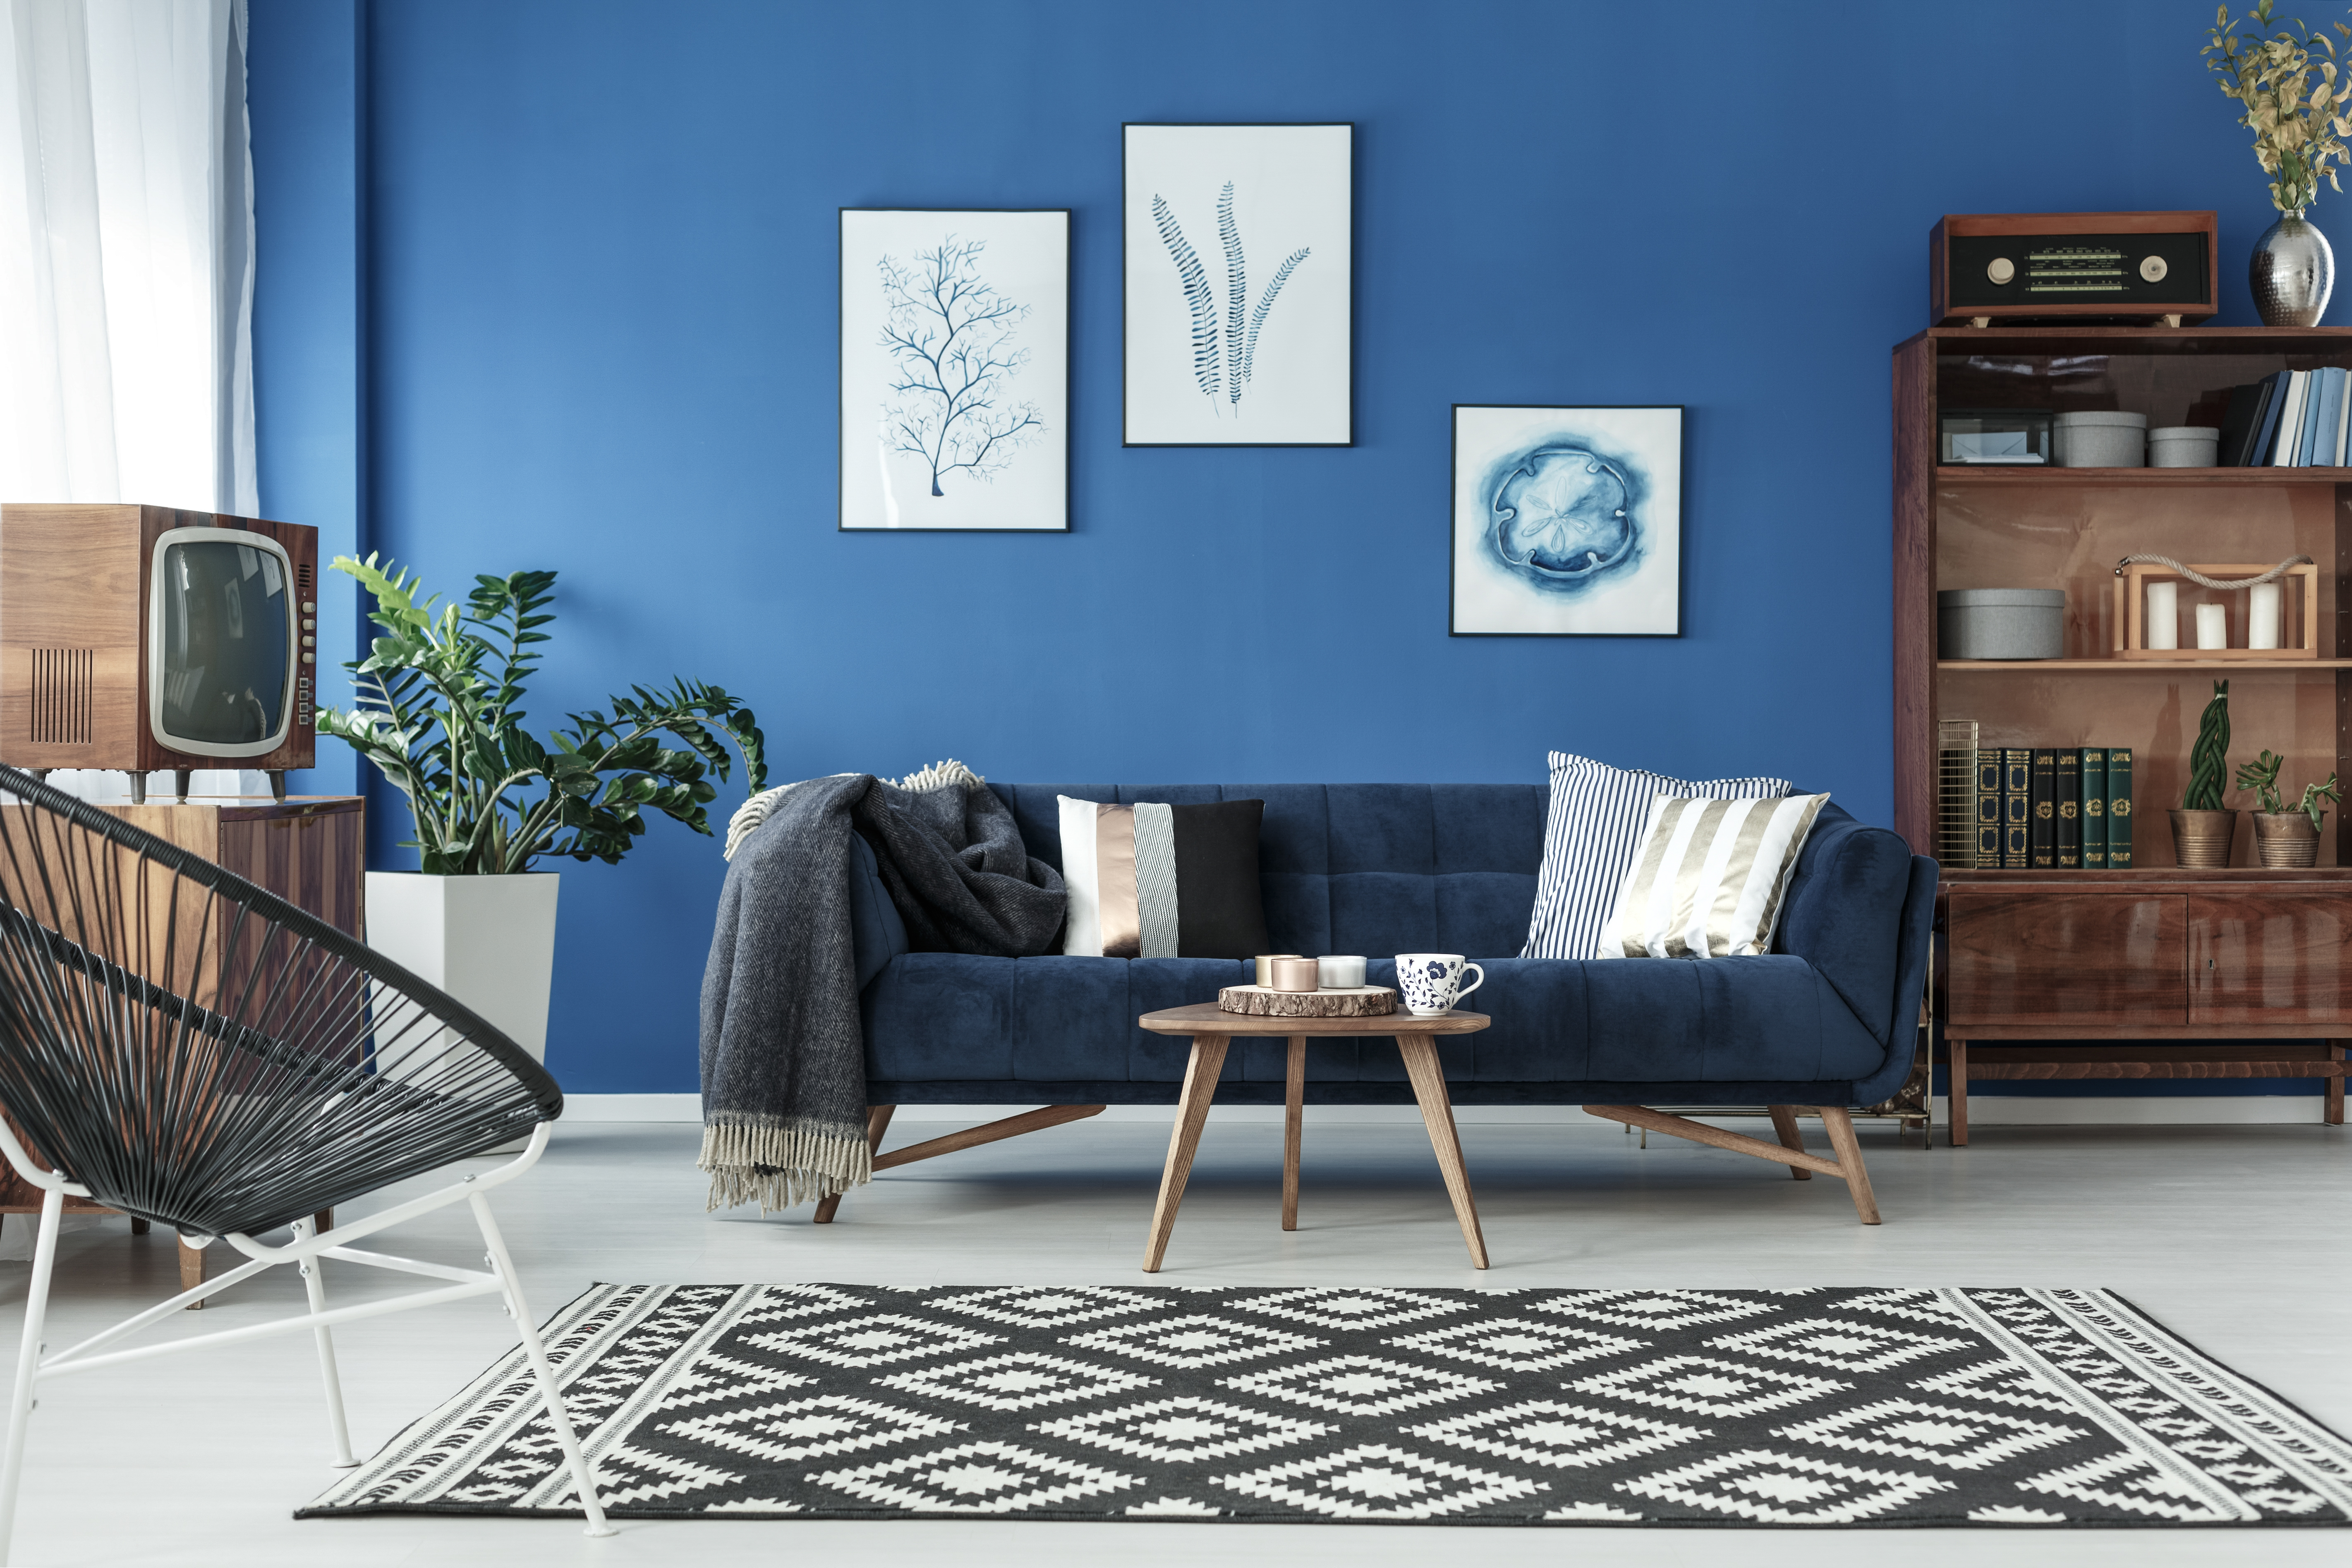 Big Sofa Island Greige How To Choose A Wall Color With Navy Blue Furniture Home Guides